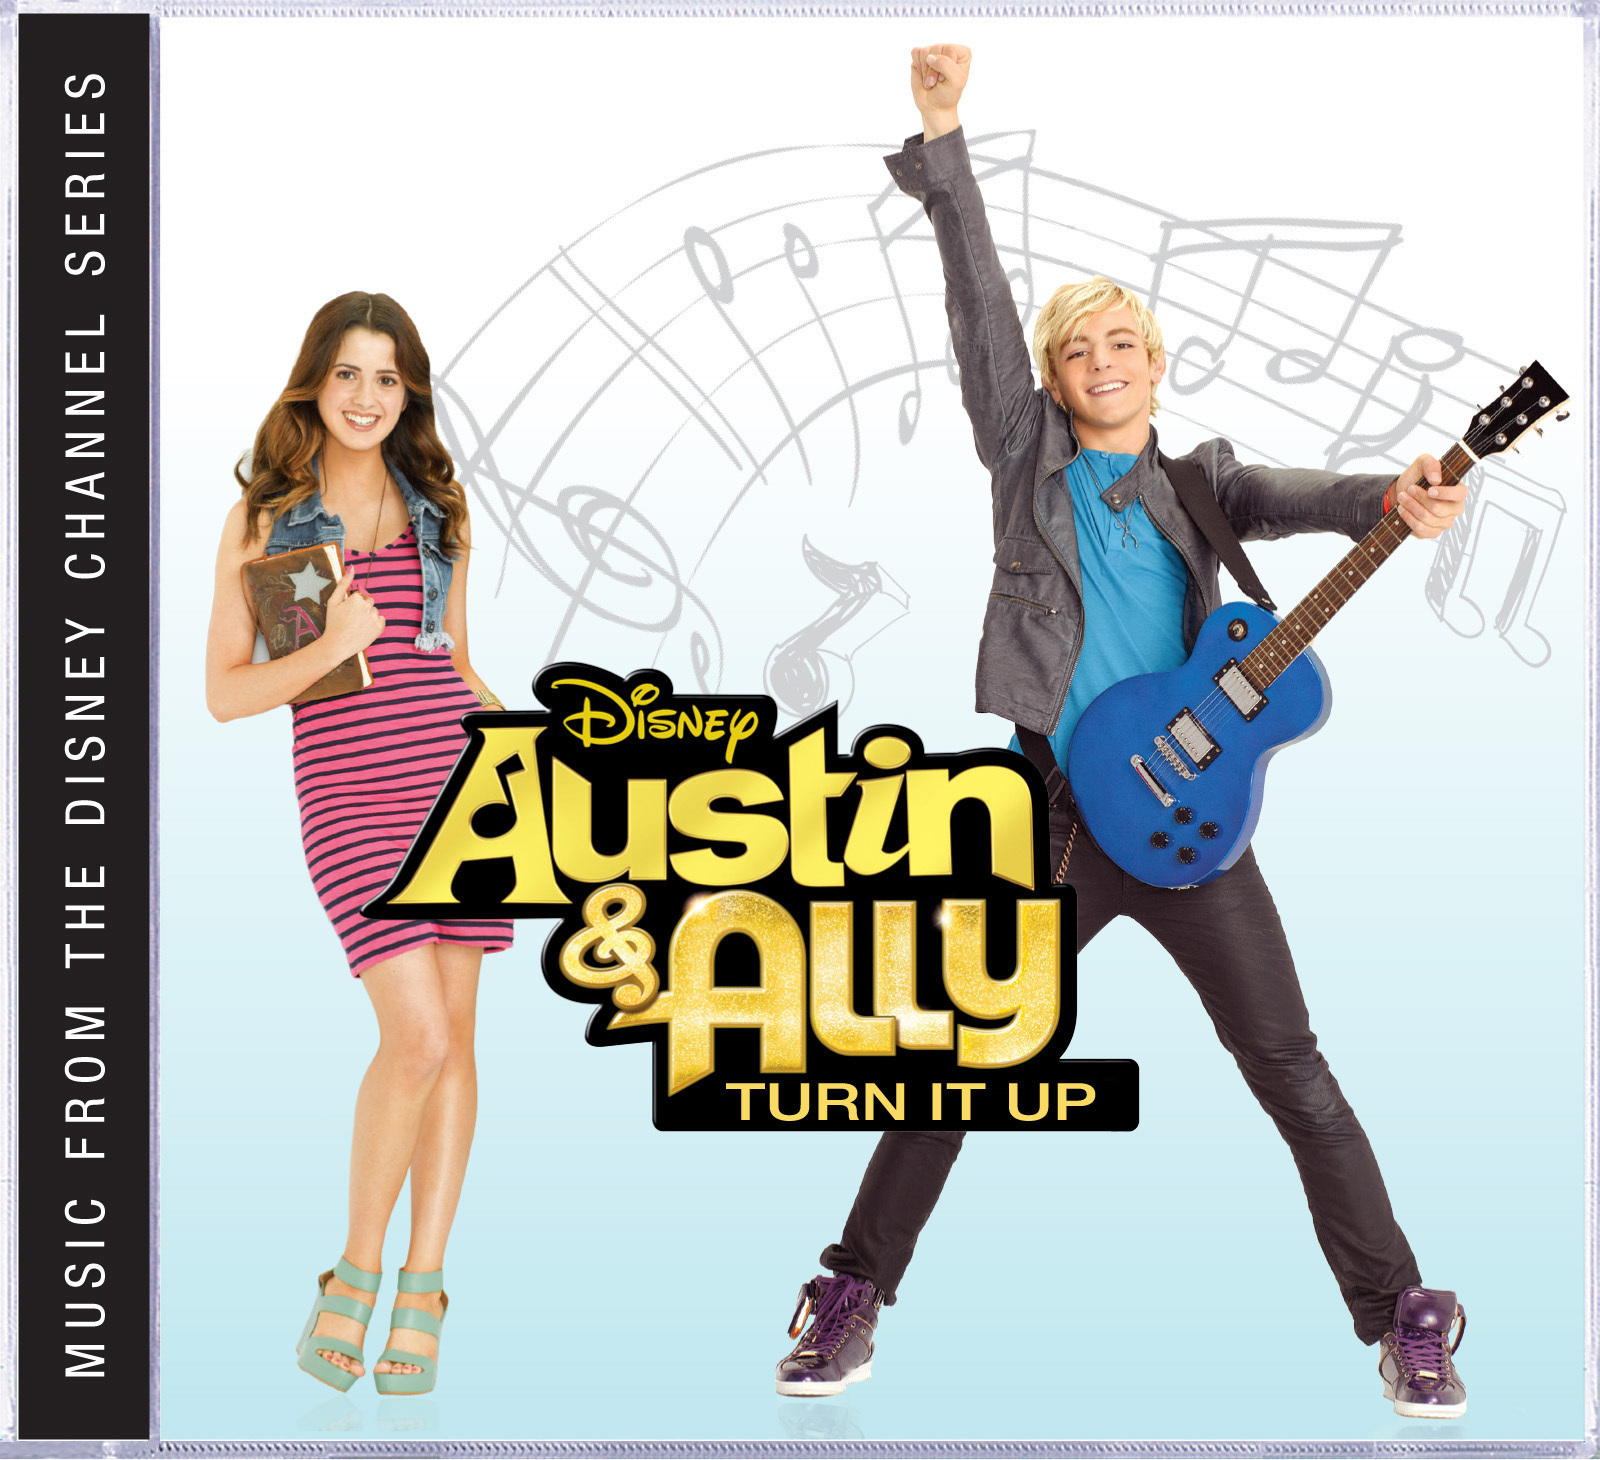 Walt Disney Records' AUSTIN & ALLY: TURN IT UP Out 12/17, Feat. Ross Lynch and Laura Marano